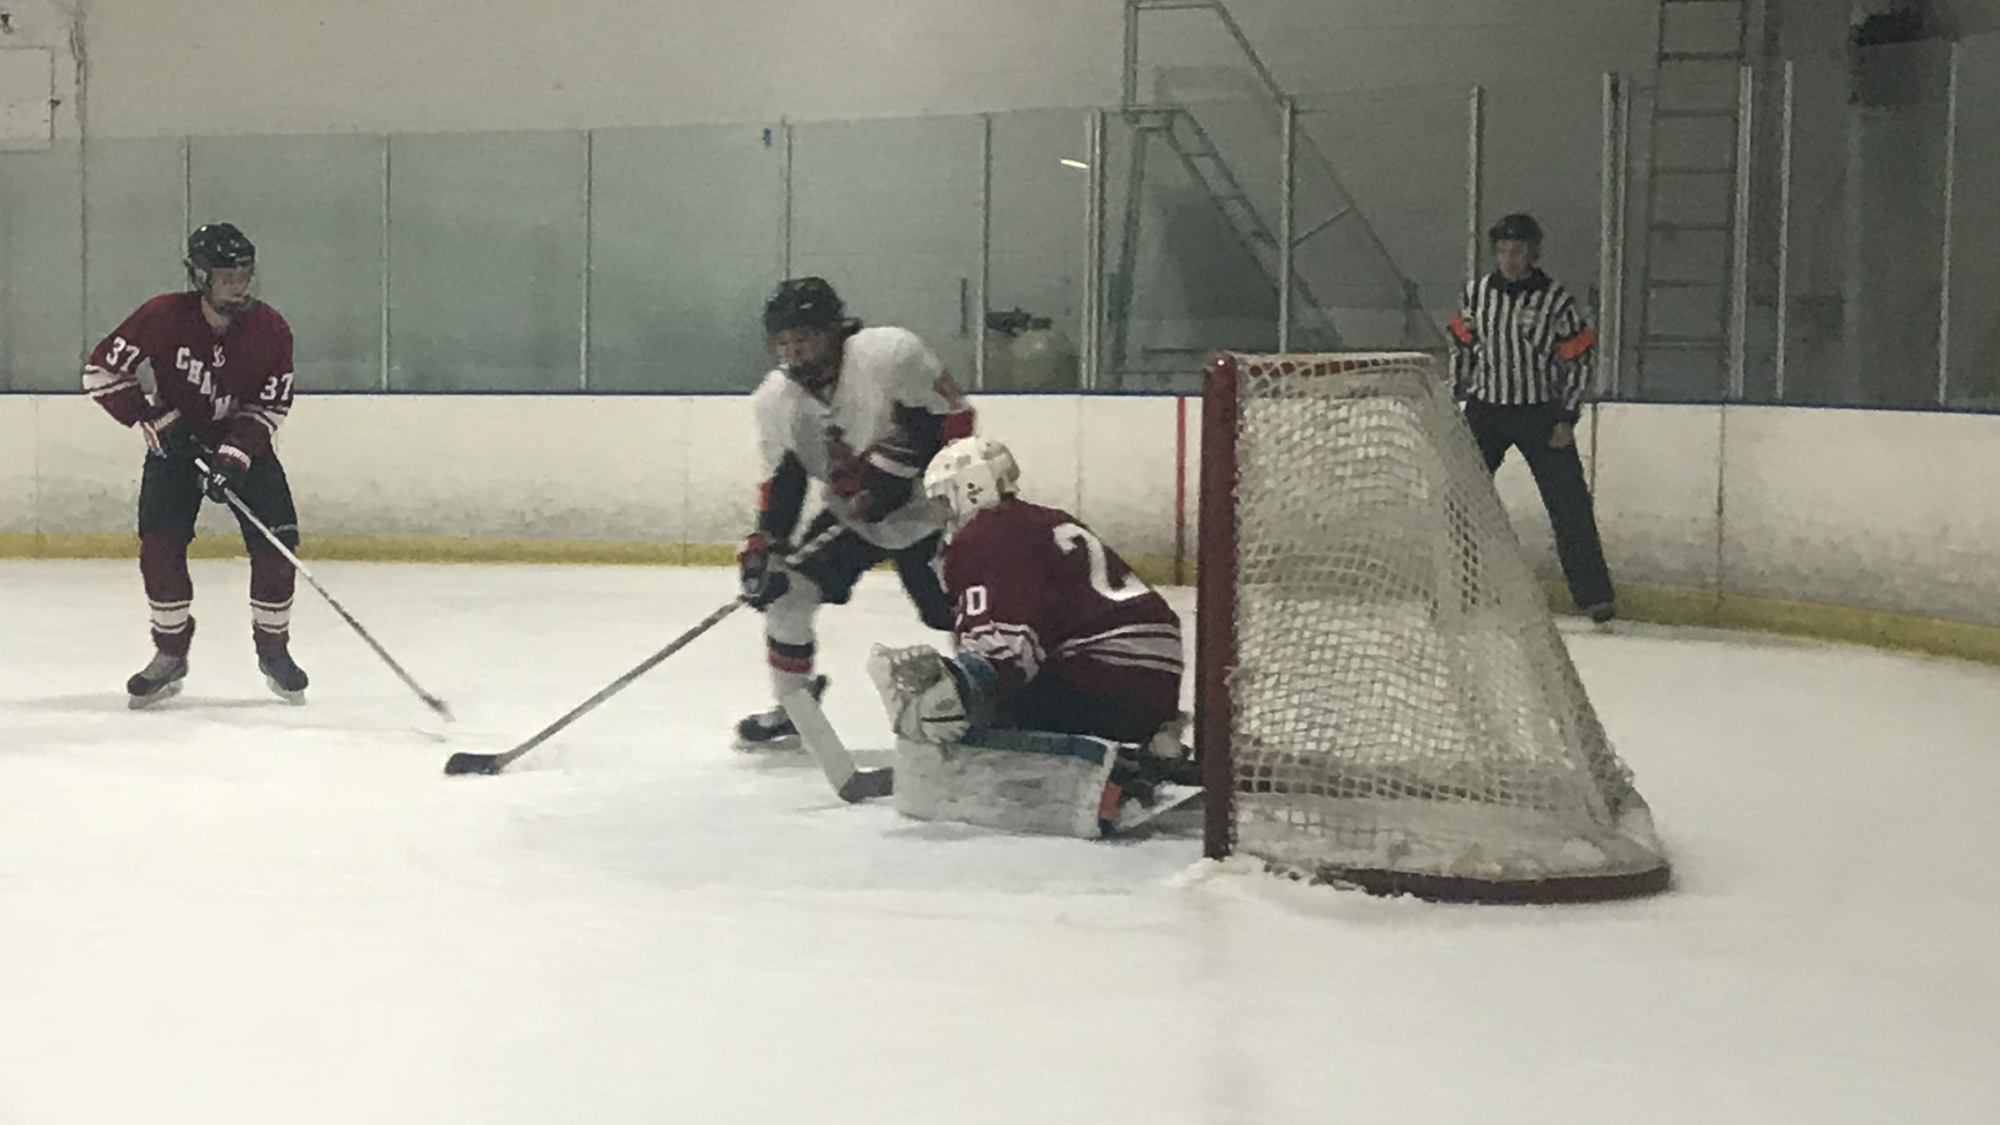 Tommy Pang (11) walks in front of the net and scores for CSUN Friday night at the Iceoplex in Simi Valley. Photo credit: Solomon Ladvienka